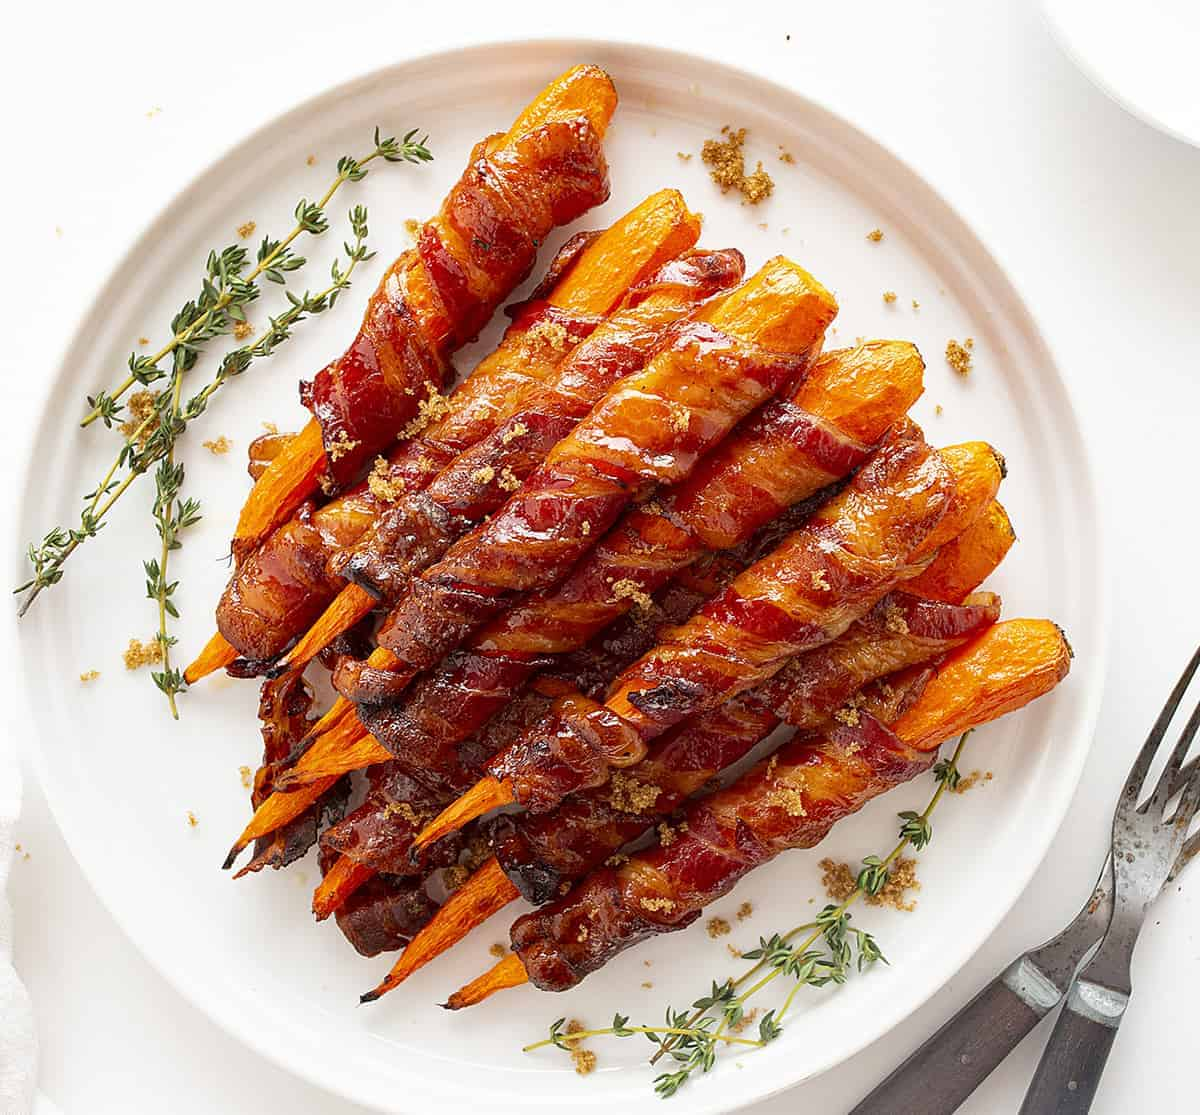 Overhead view of Maple Bacon Carrots on White Plate